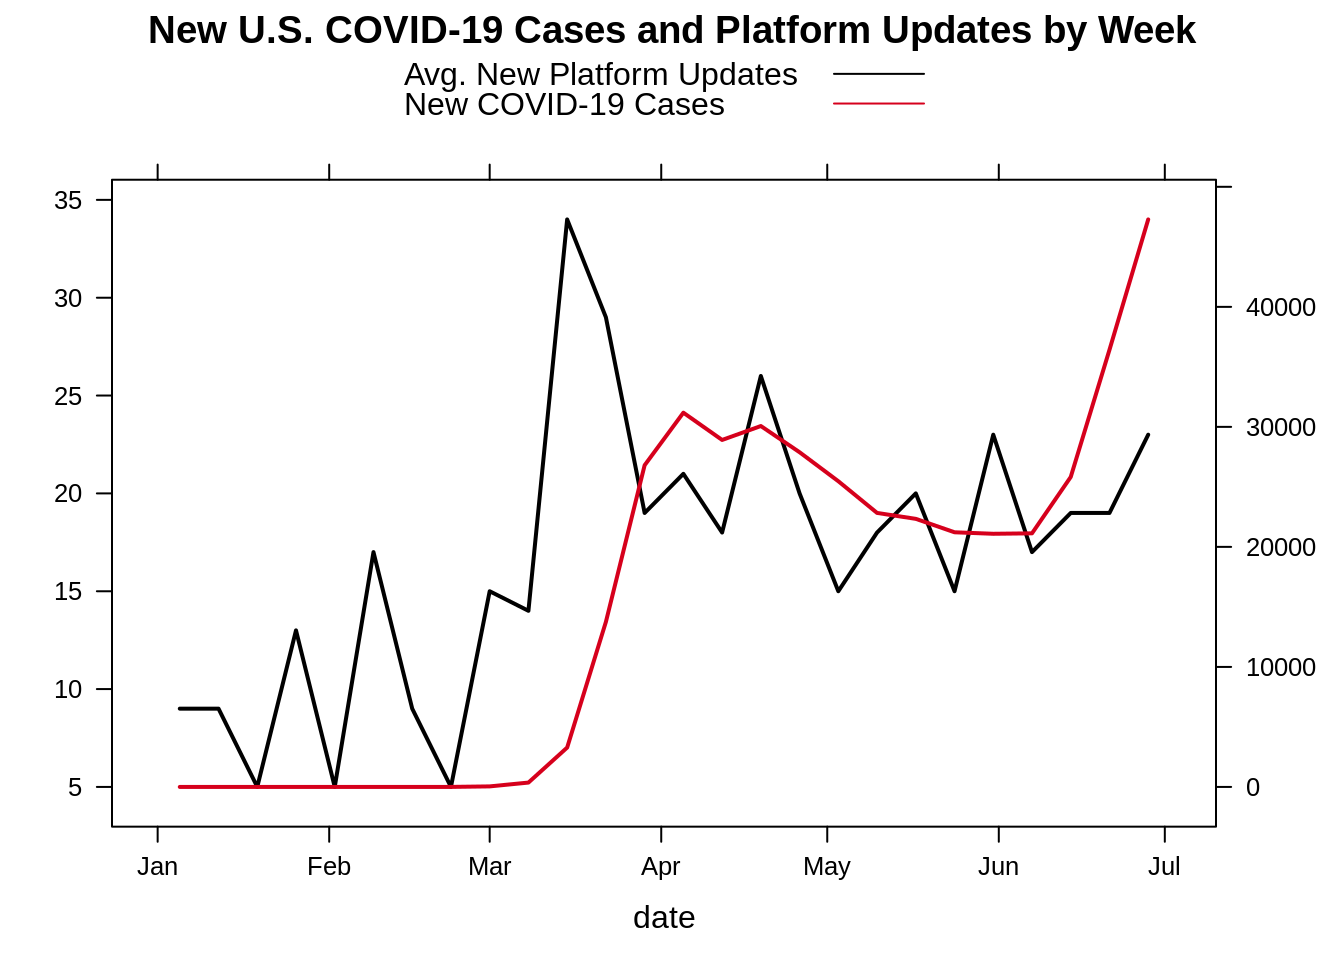 Graph showing new U.S. COVID-19 cases and platform updates by week